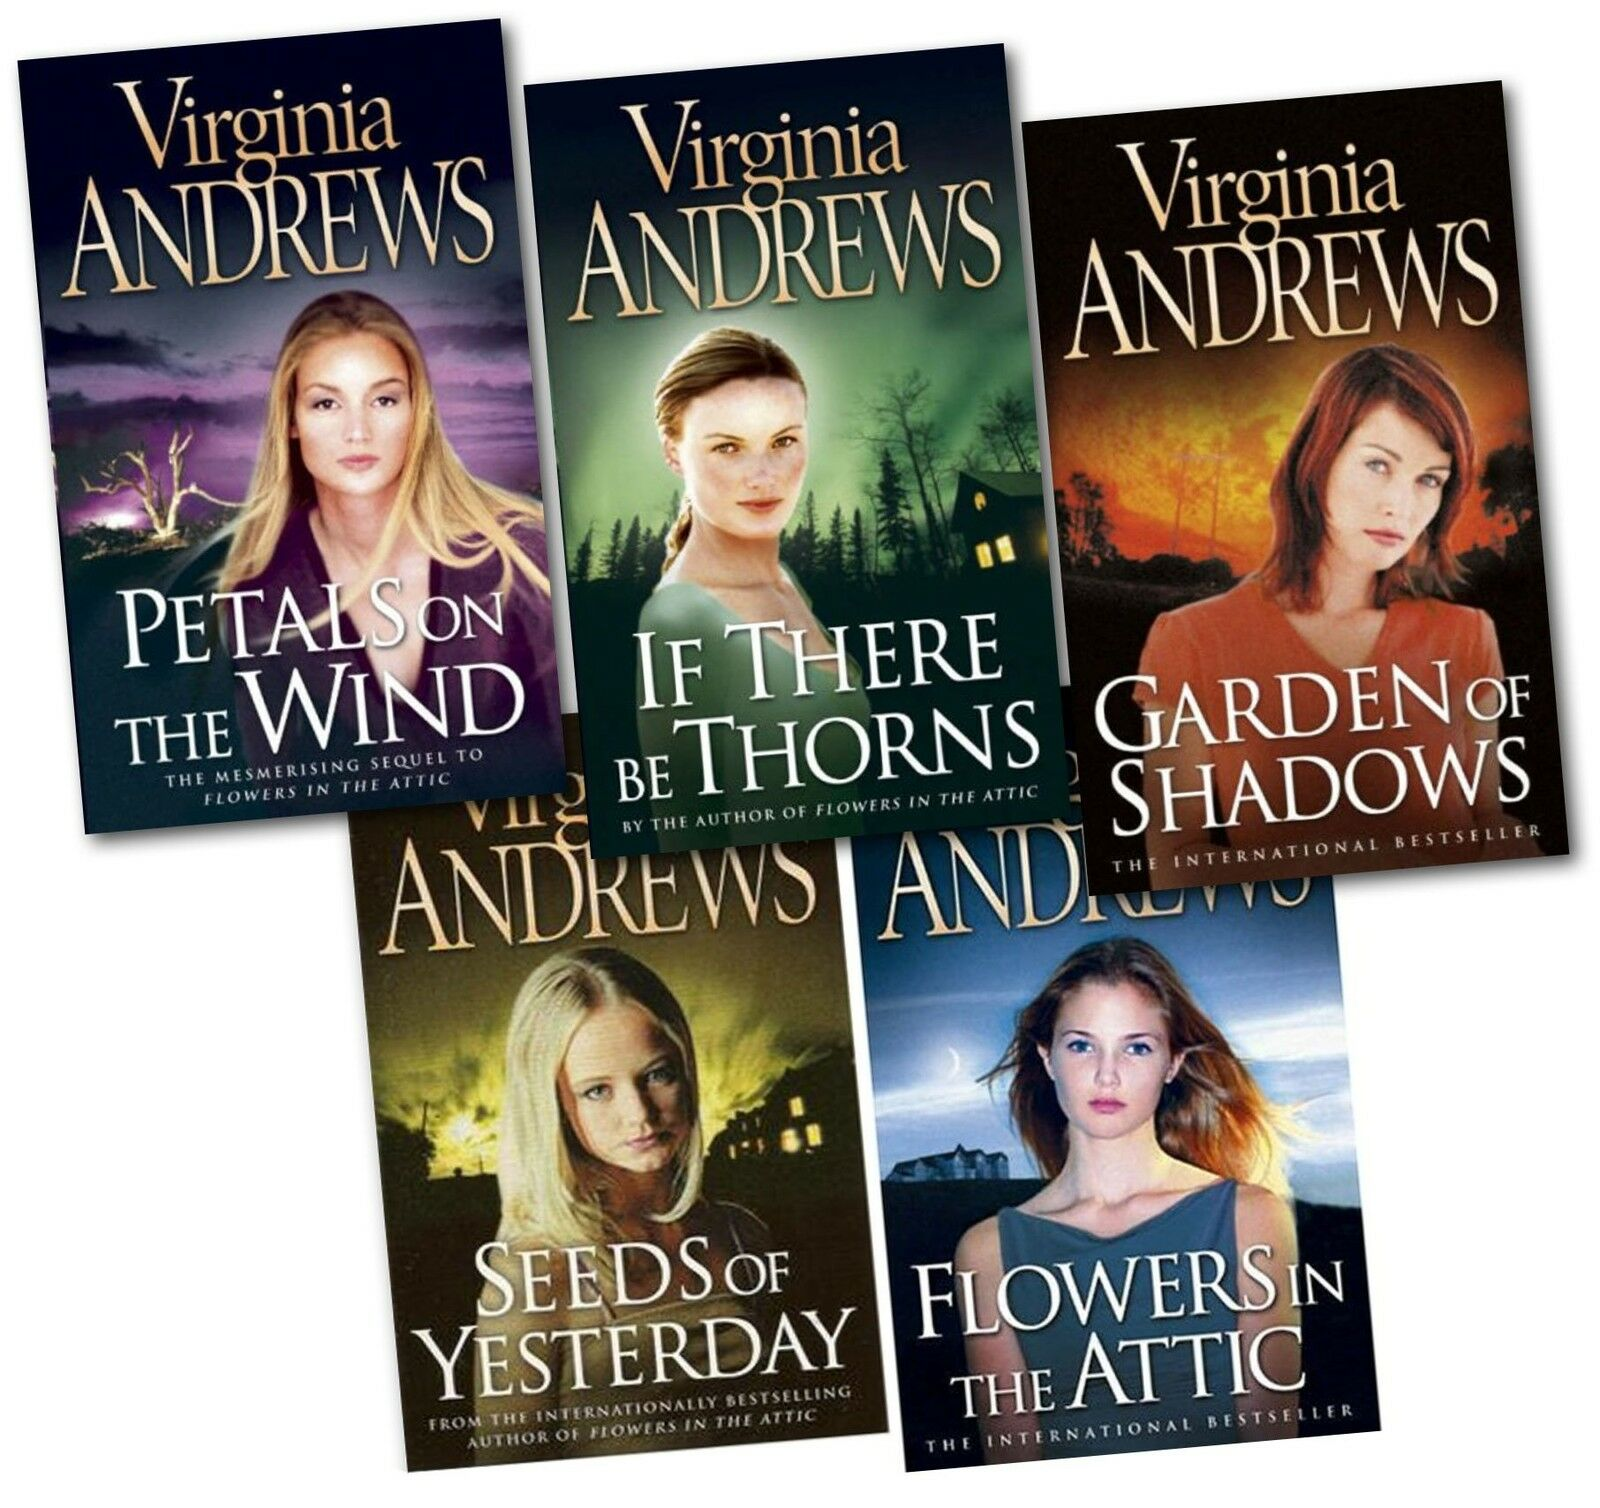 flowers in the attic virginia andrews 5 books set petal on the wind dollanger ebay. Black Bedroom Furniture Sets. Home Design Ideas